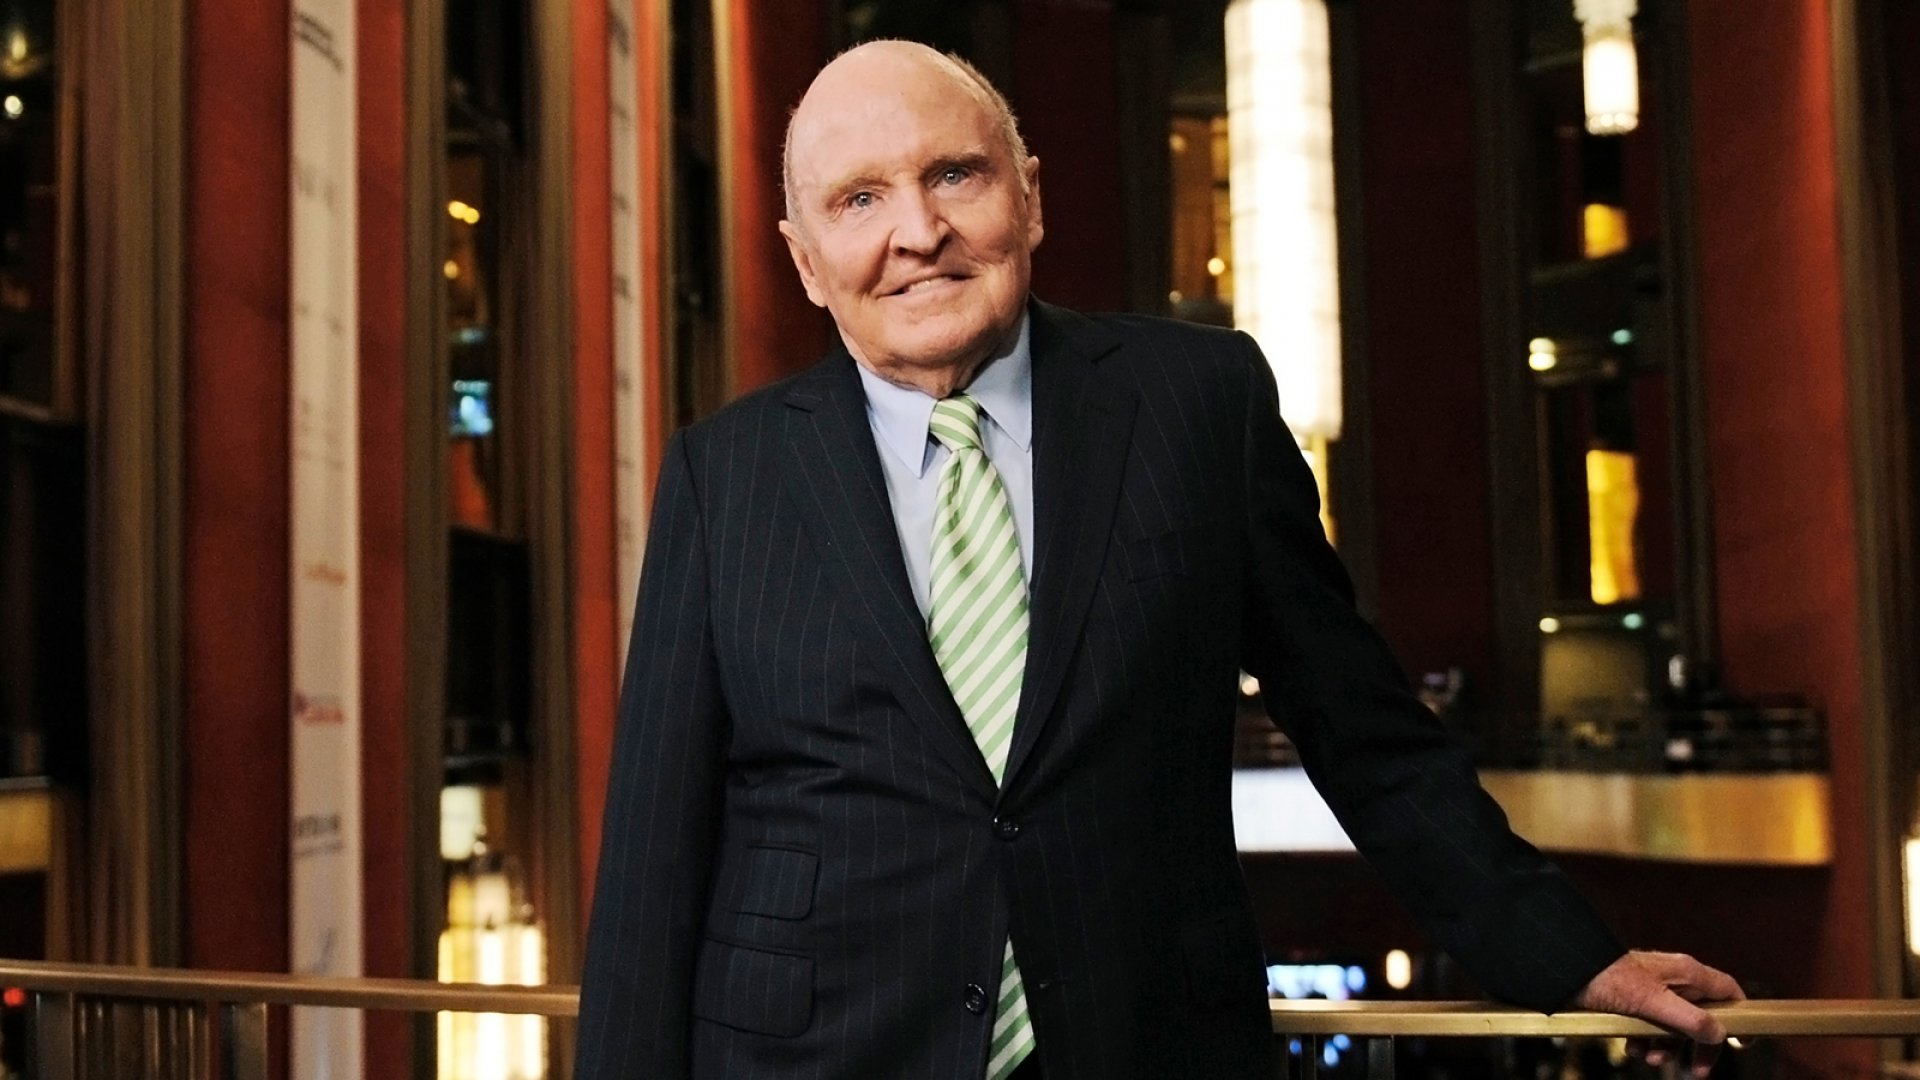 Jack Welch, Former General Electric CEO Who Influenced Generations of Business Leaders, Has Died at 84